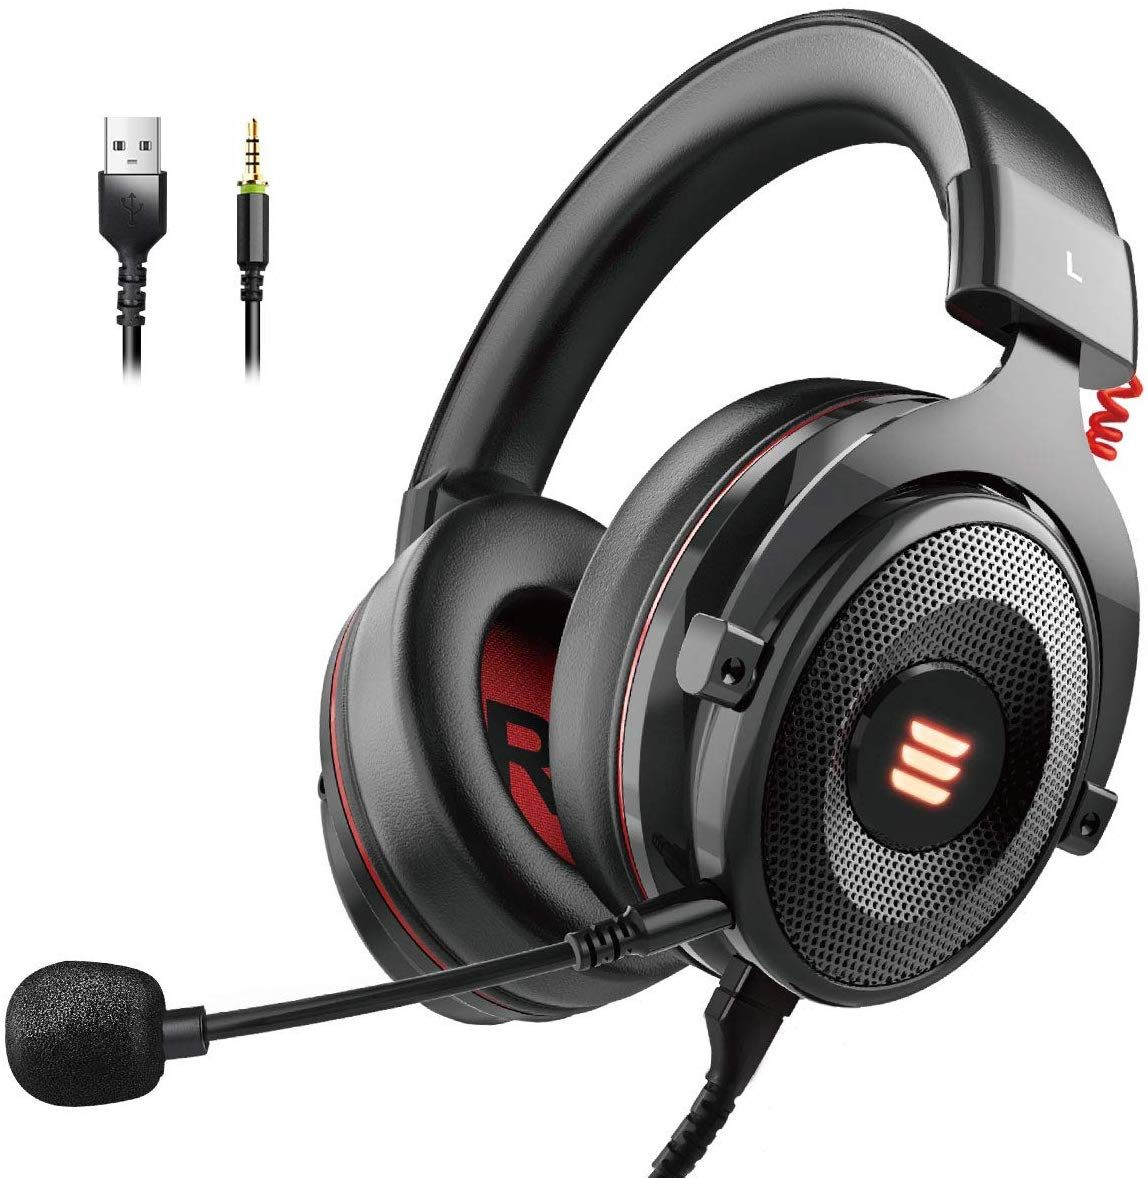 Eksa E900 Gaming Headset Compatible Pc In 2020 Gaming Headset Xbox One Headset Gaming Headphones